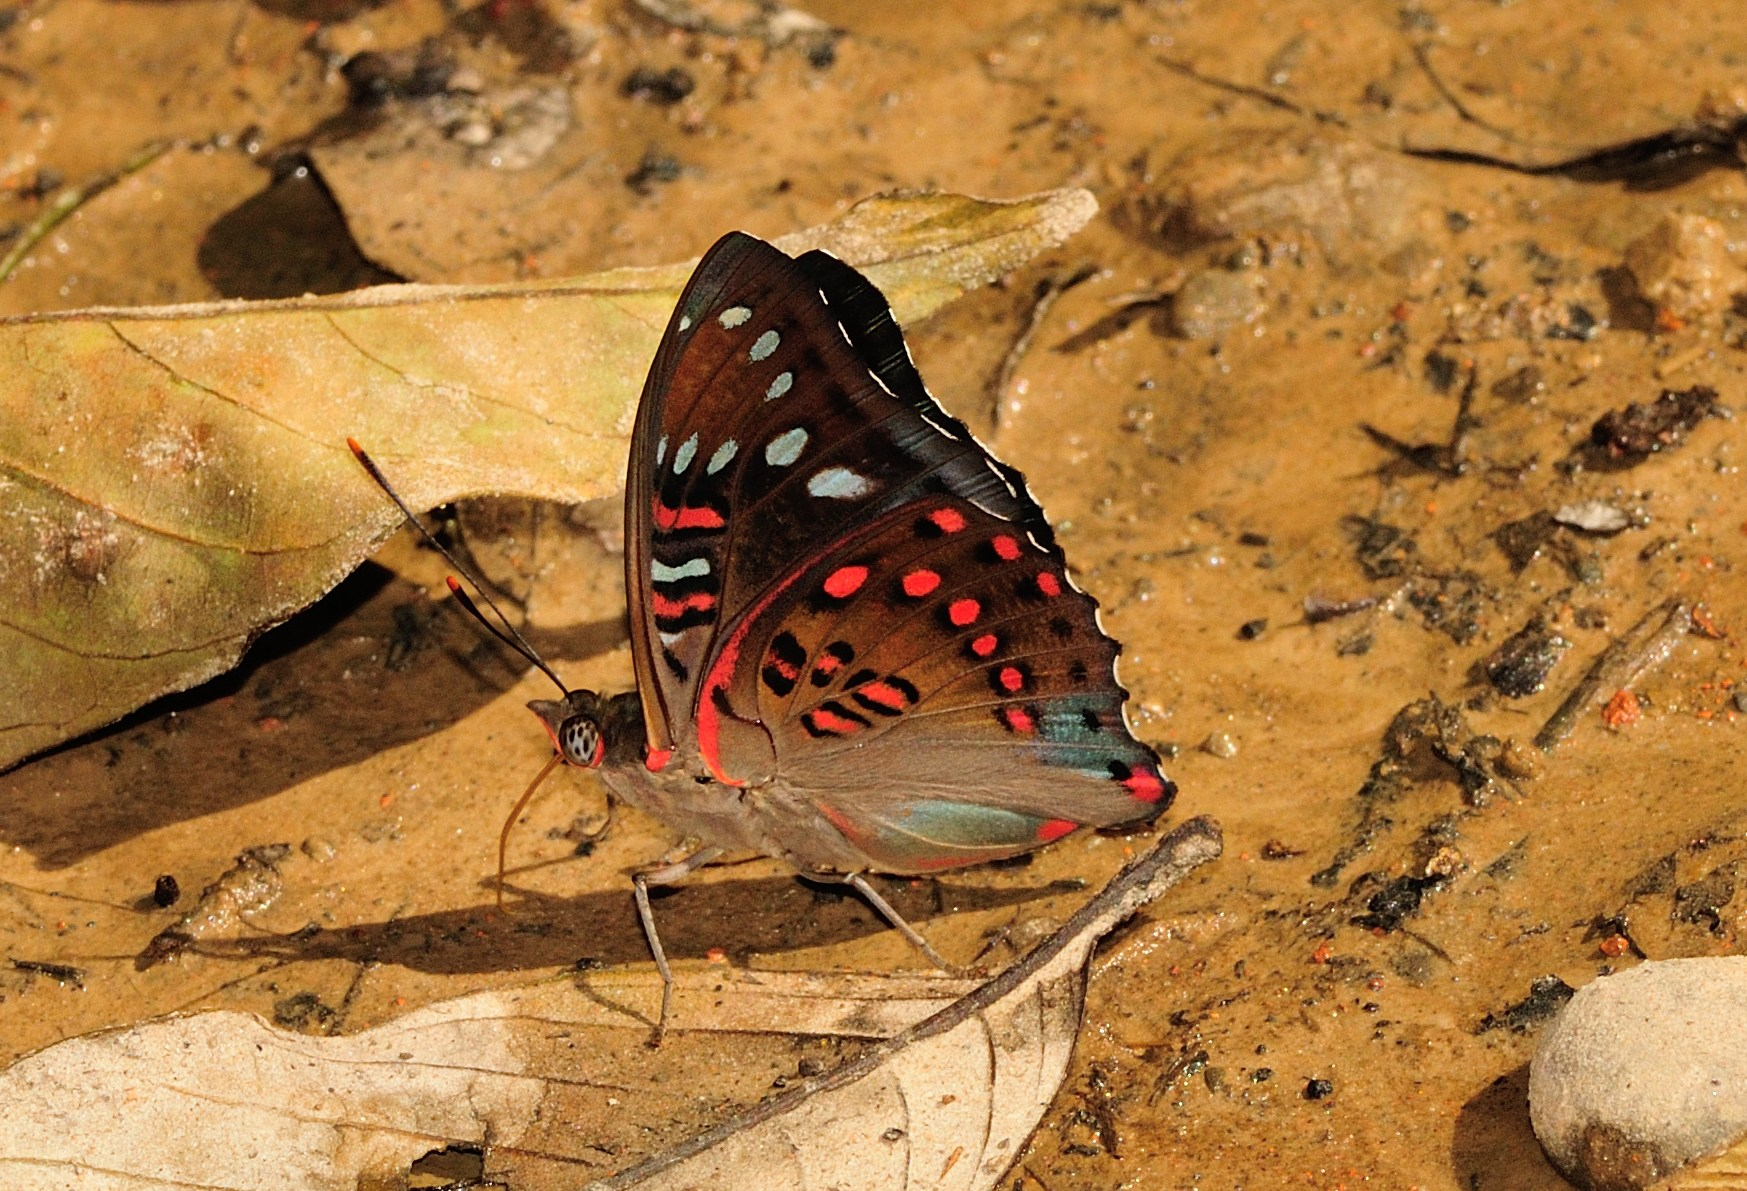 A gaudy baron mud-puddling, i.e.  getting the nutrients it requires from a wet patch of soil. Males normally gather salts and pass them to females while mating. Photo: Sanjay Sondhi